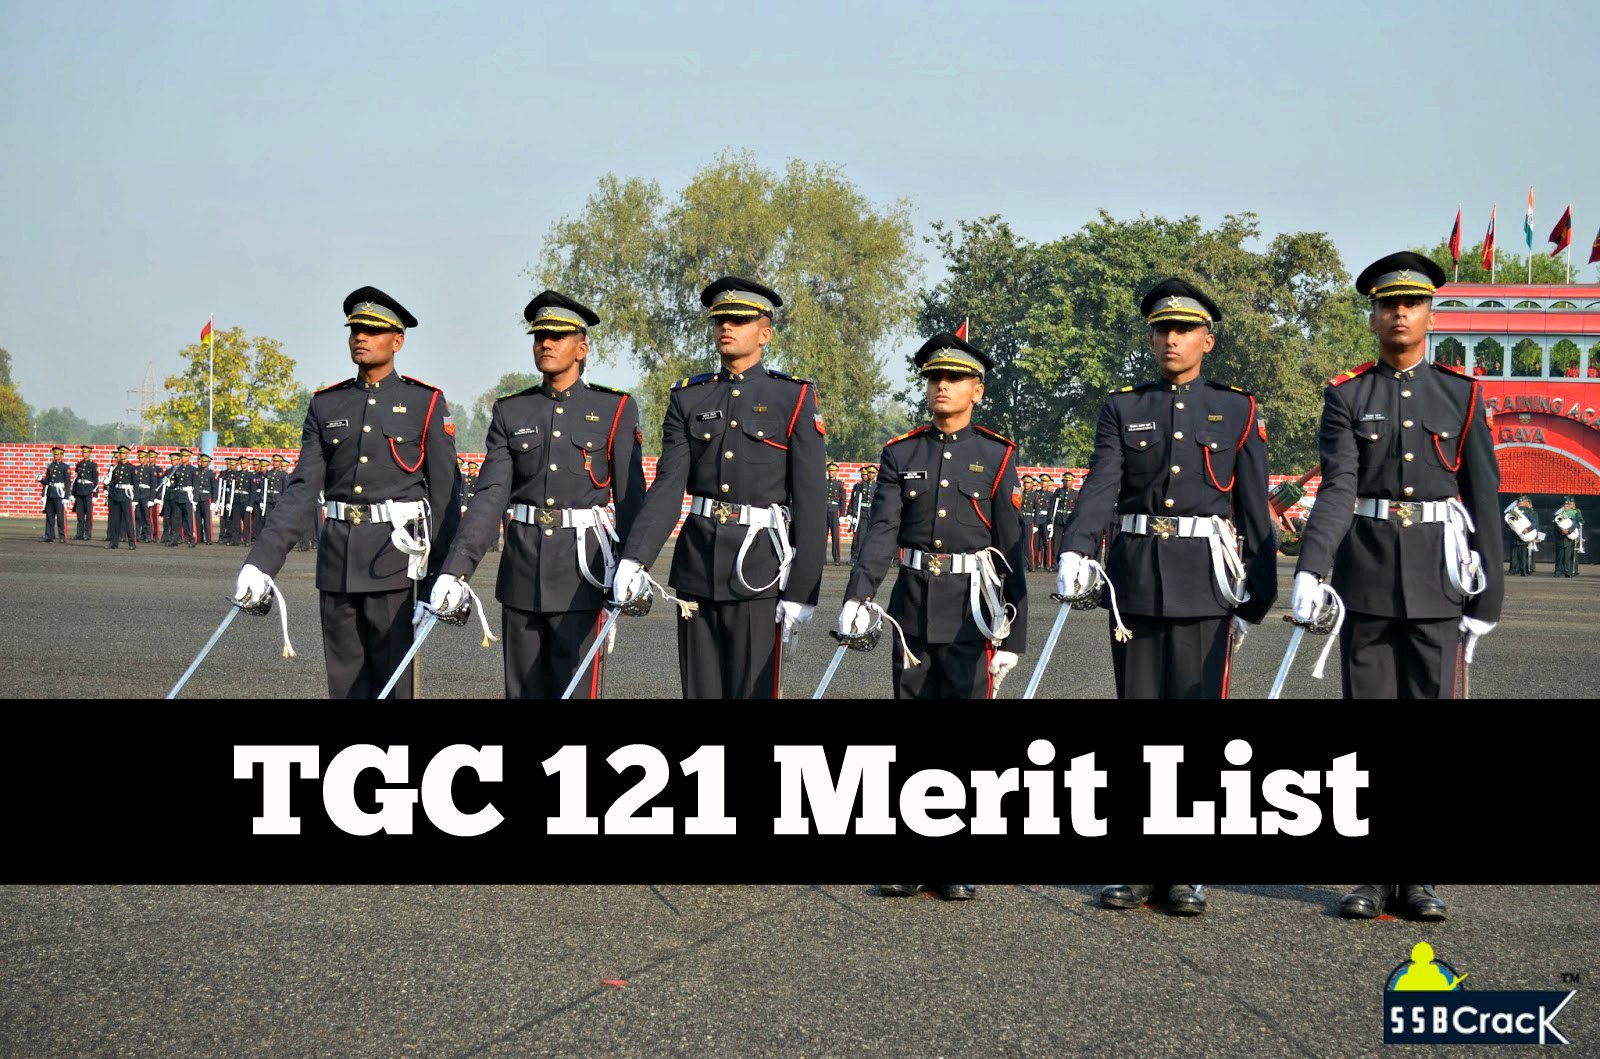 tgc 121 merit list